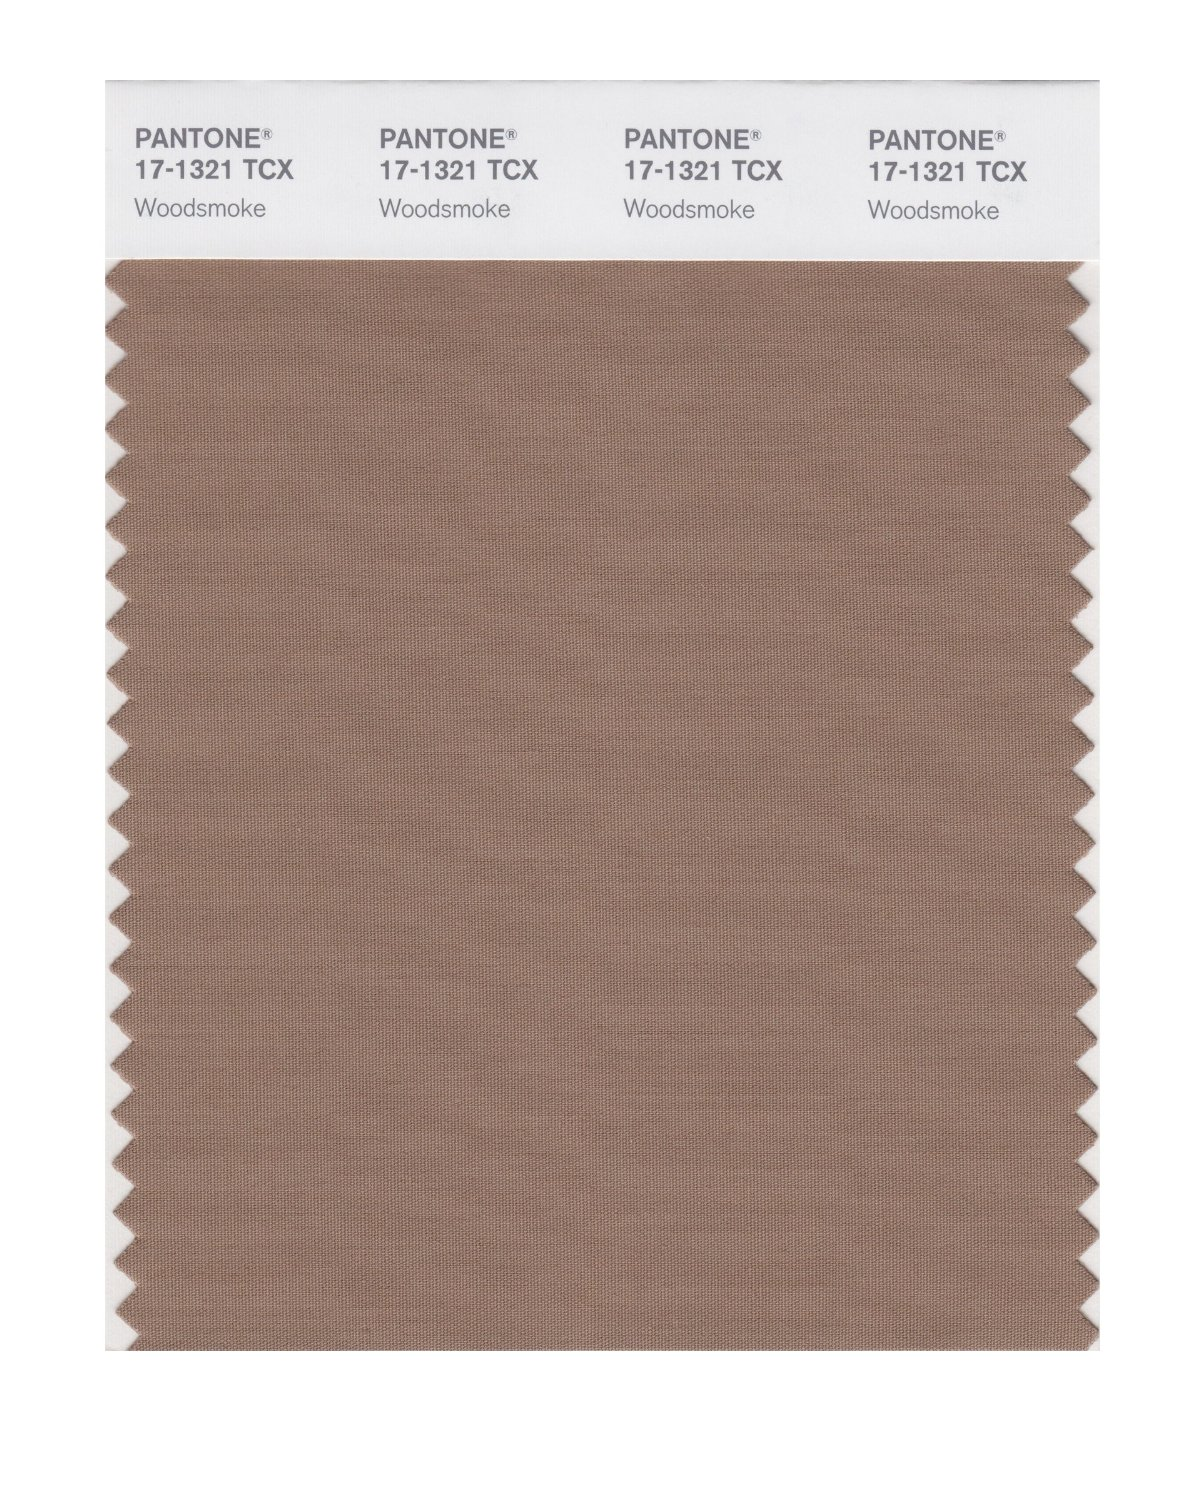 Pantone Smart Swatch 17-1321 Woodsmoke